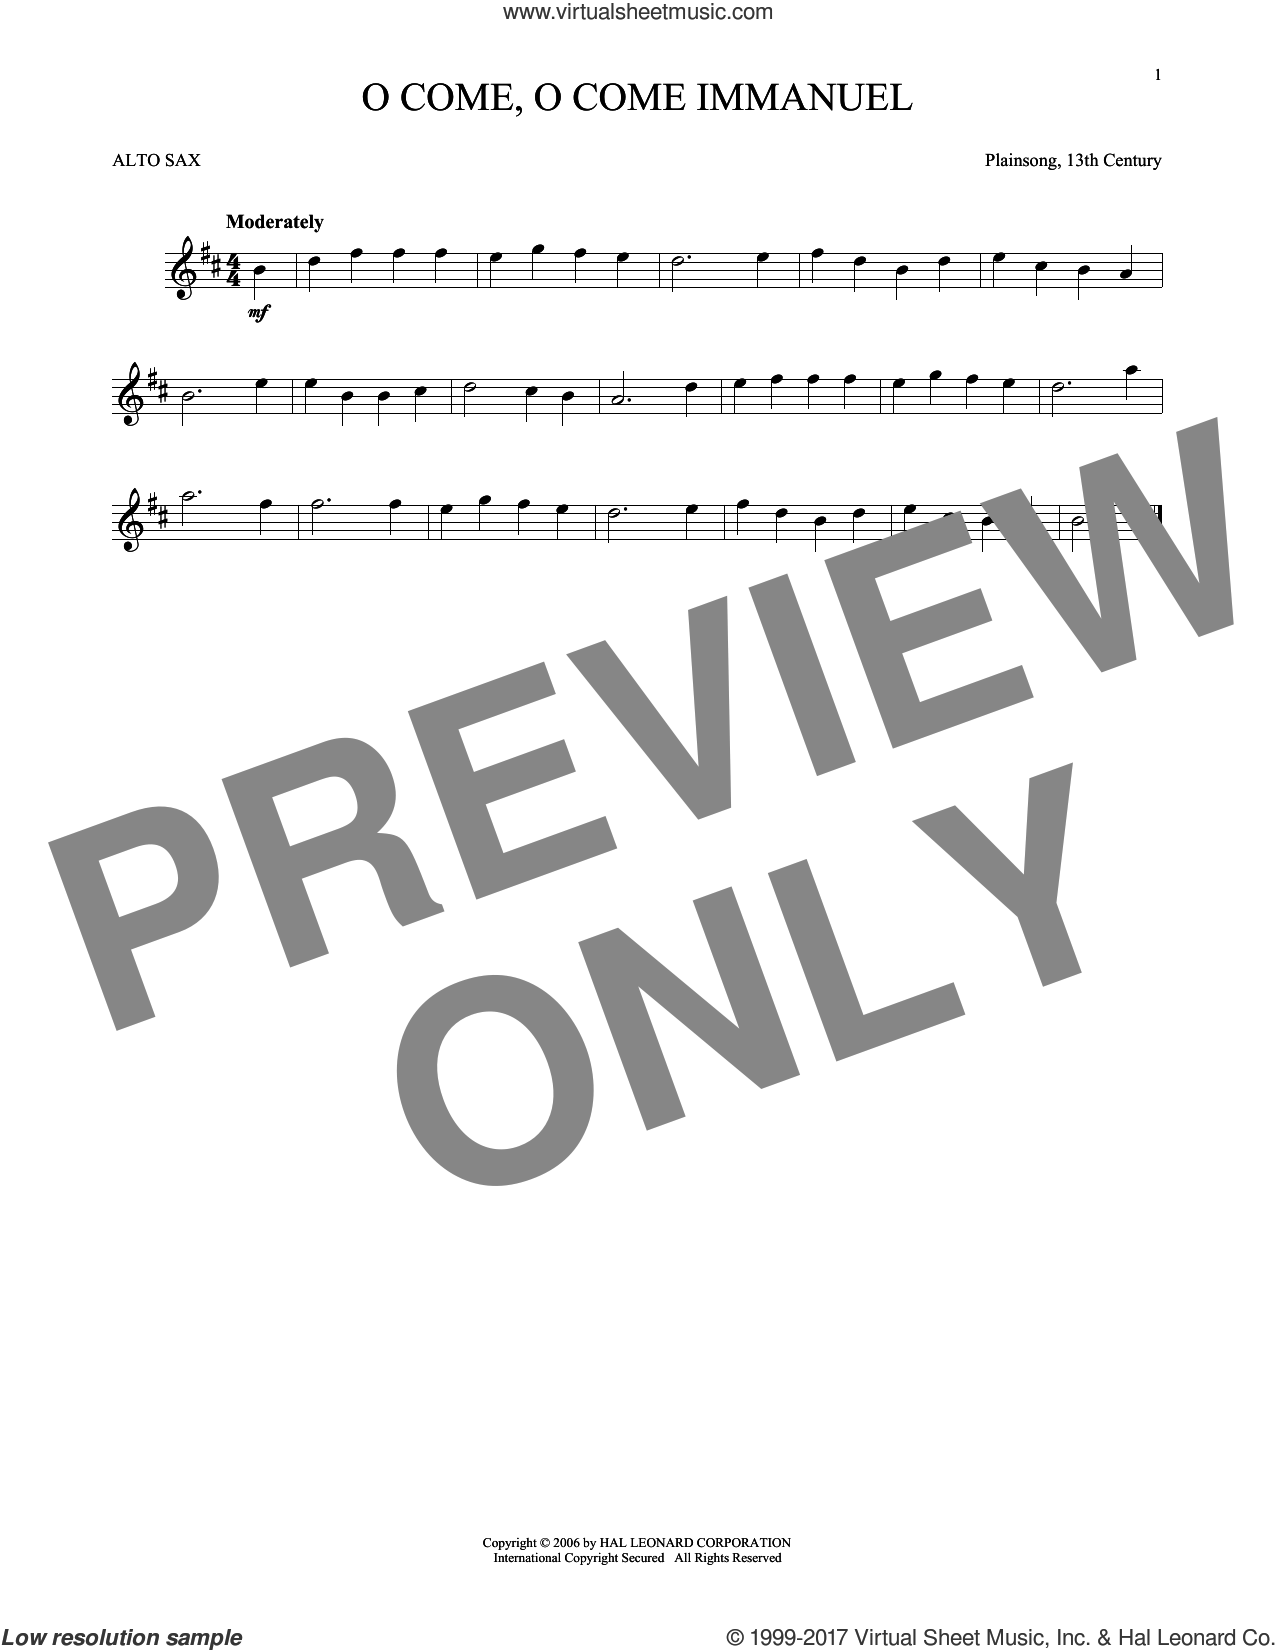 O Come, O Come Immanuel sheet music for alto saxophone solo by Plainsong, 13th Century, intermediate. Score Image Preview.